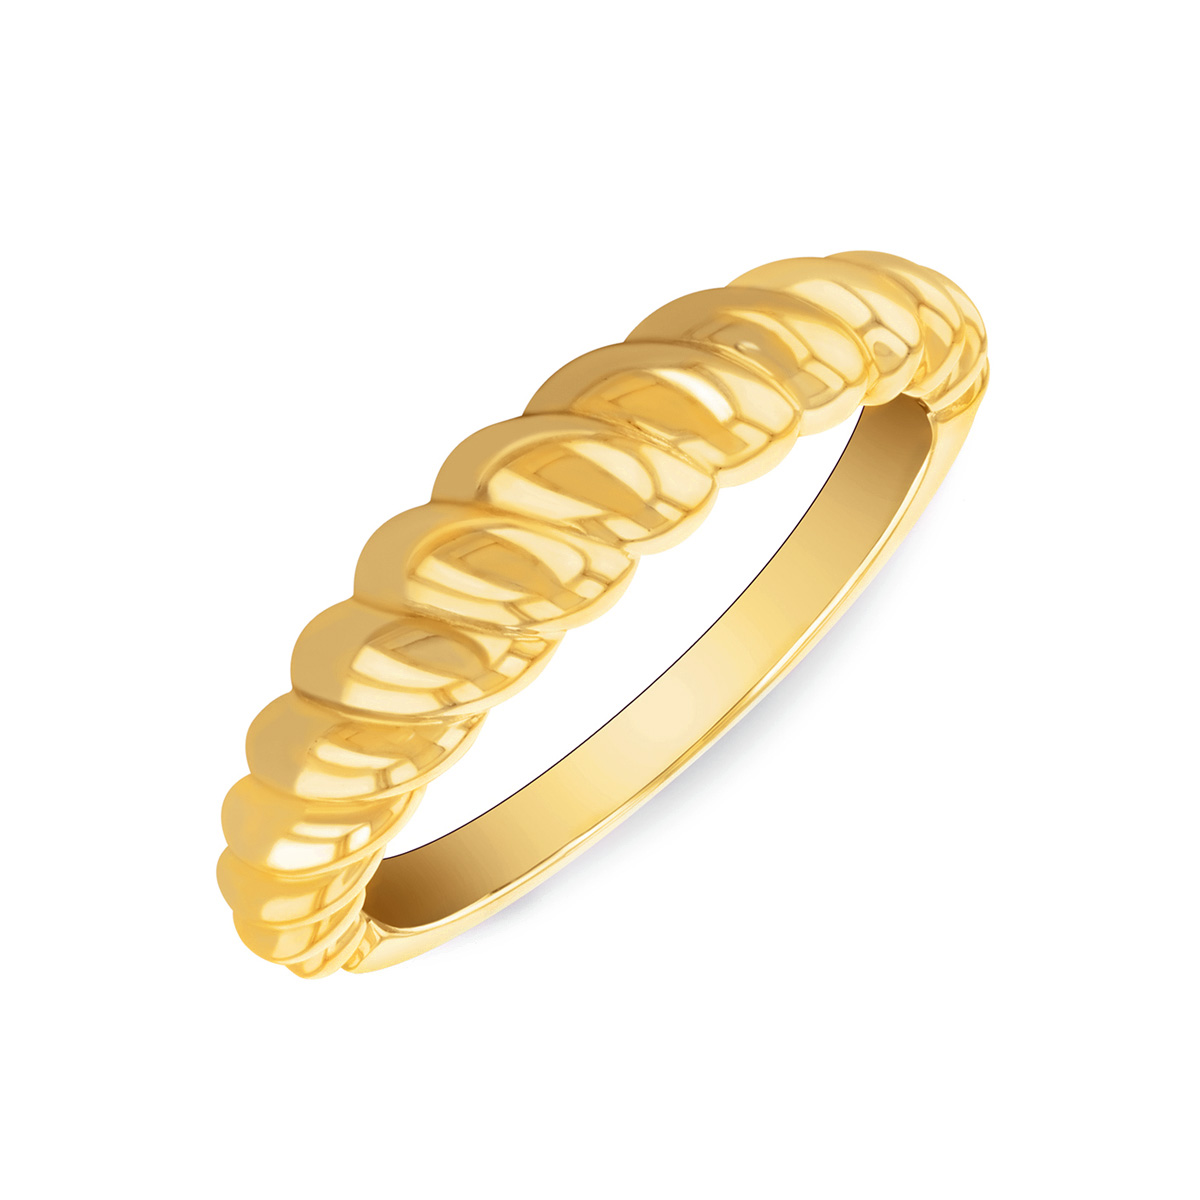 Soleil Collection Twist Ring   9K Yellow Gold